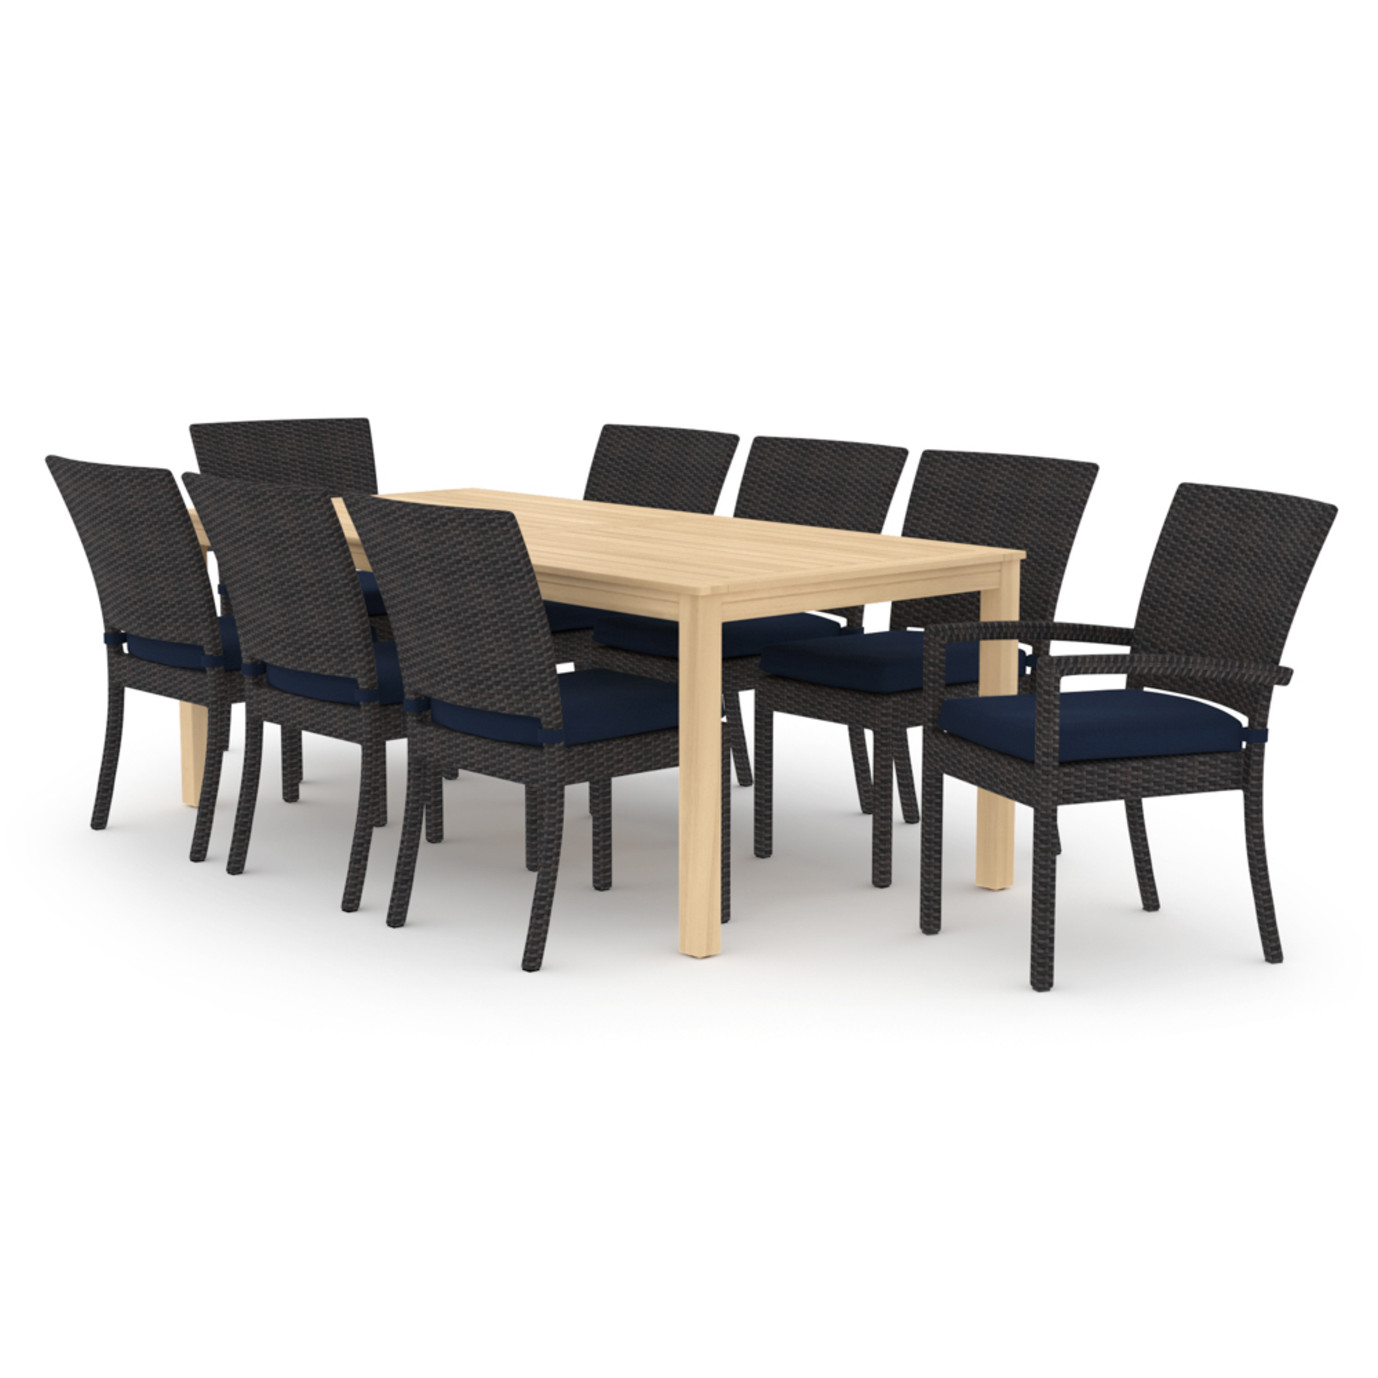 Deco™ Wood 9pc Dining Set - Navy Blue